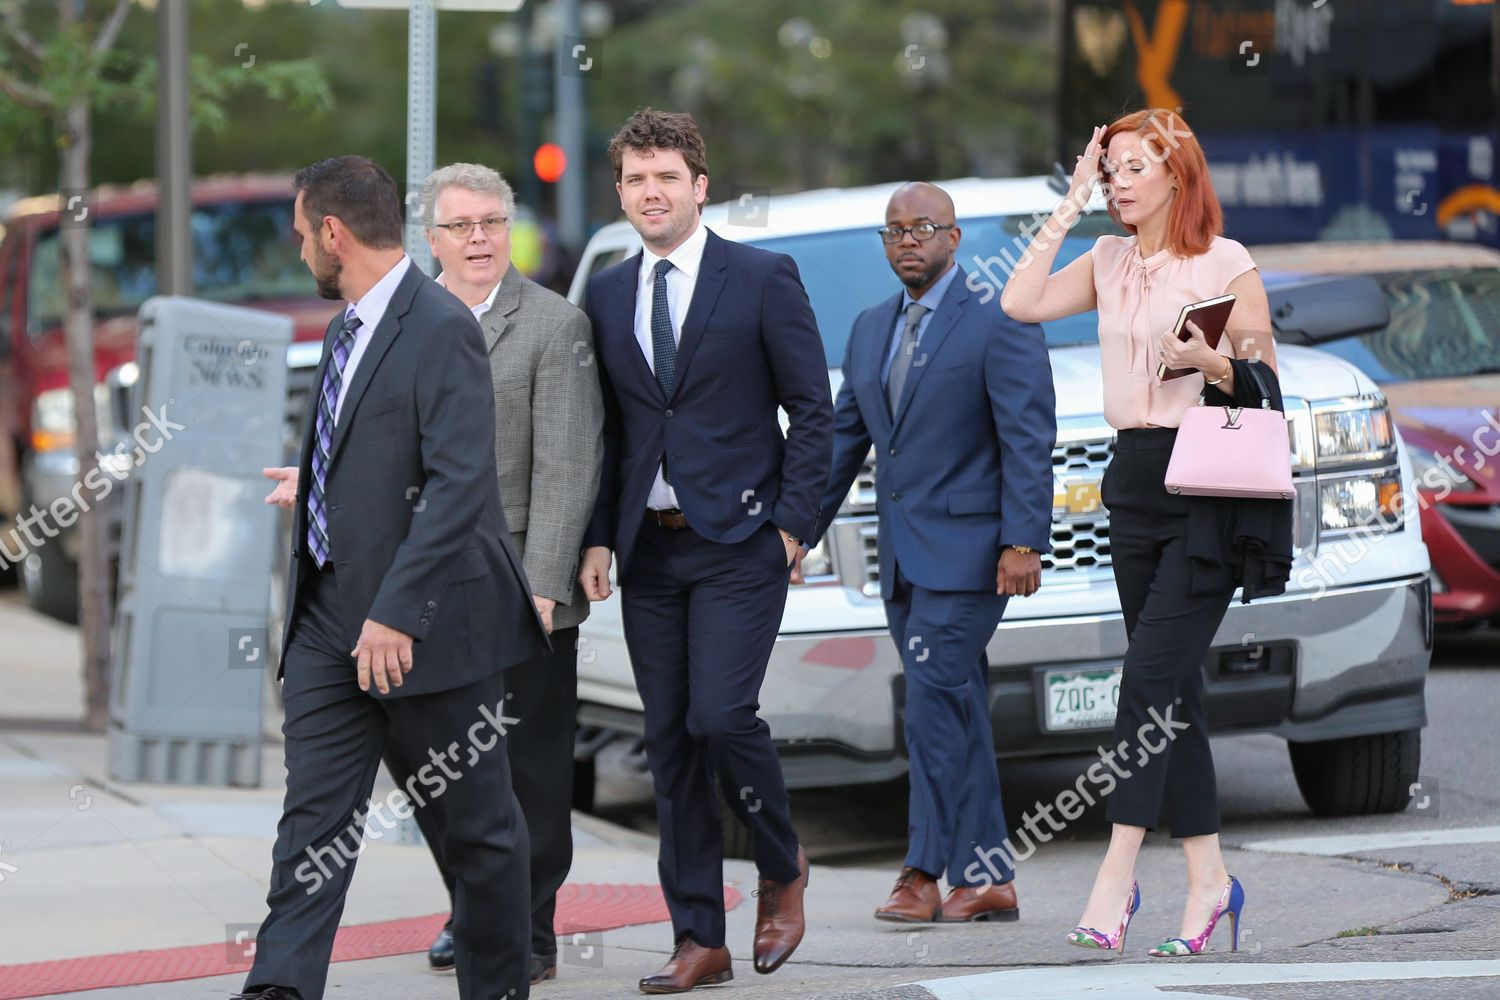 Austin Swift C Taylor Swifts Brother Tree Editorial Stock Photo Stock Image Shutterstock